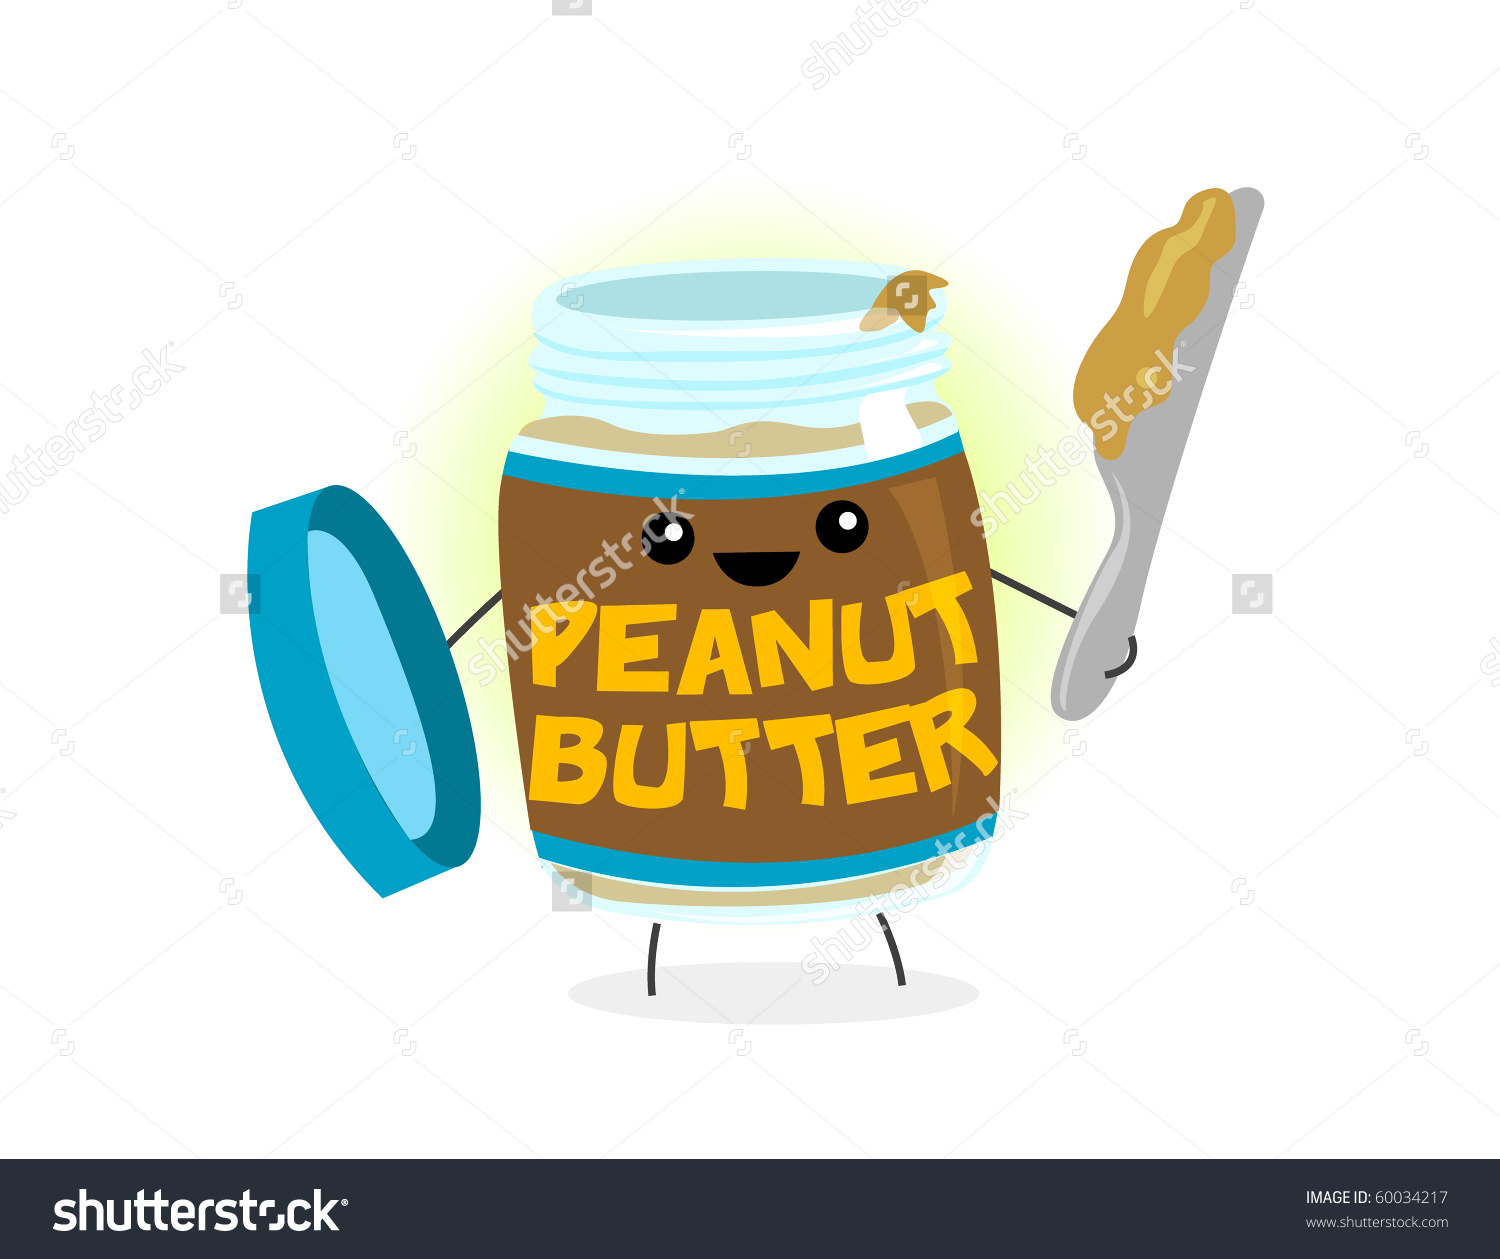 Peanut Butter clipart cute Peanut Clipart and jelly Collection